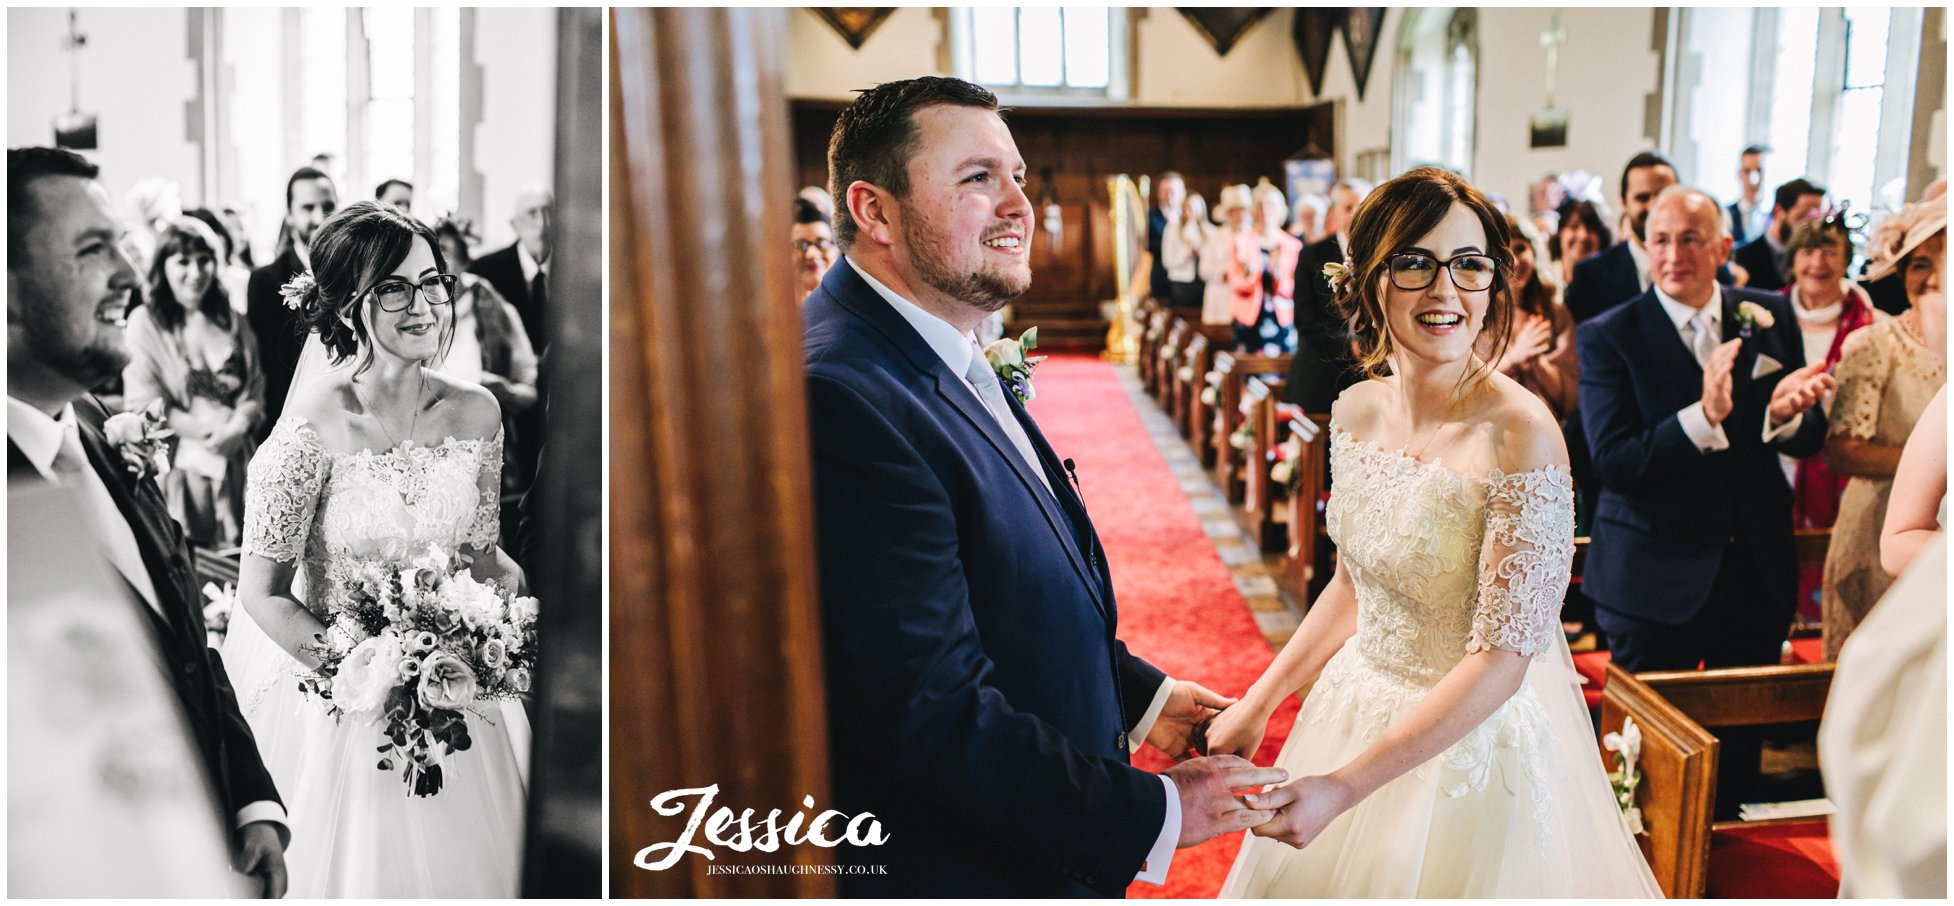 couple exchange vows at their church wedding